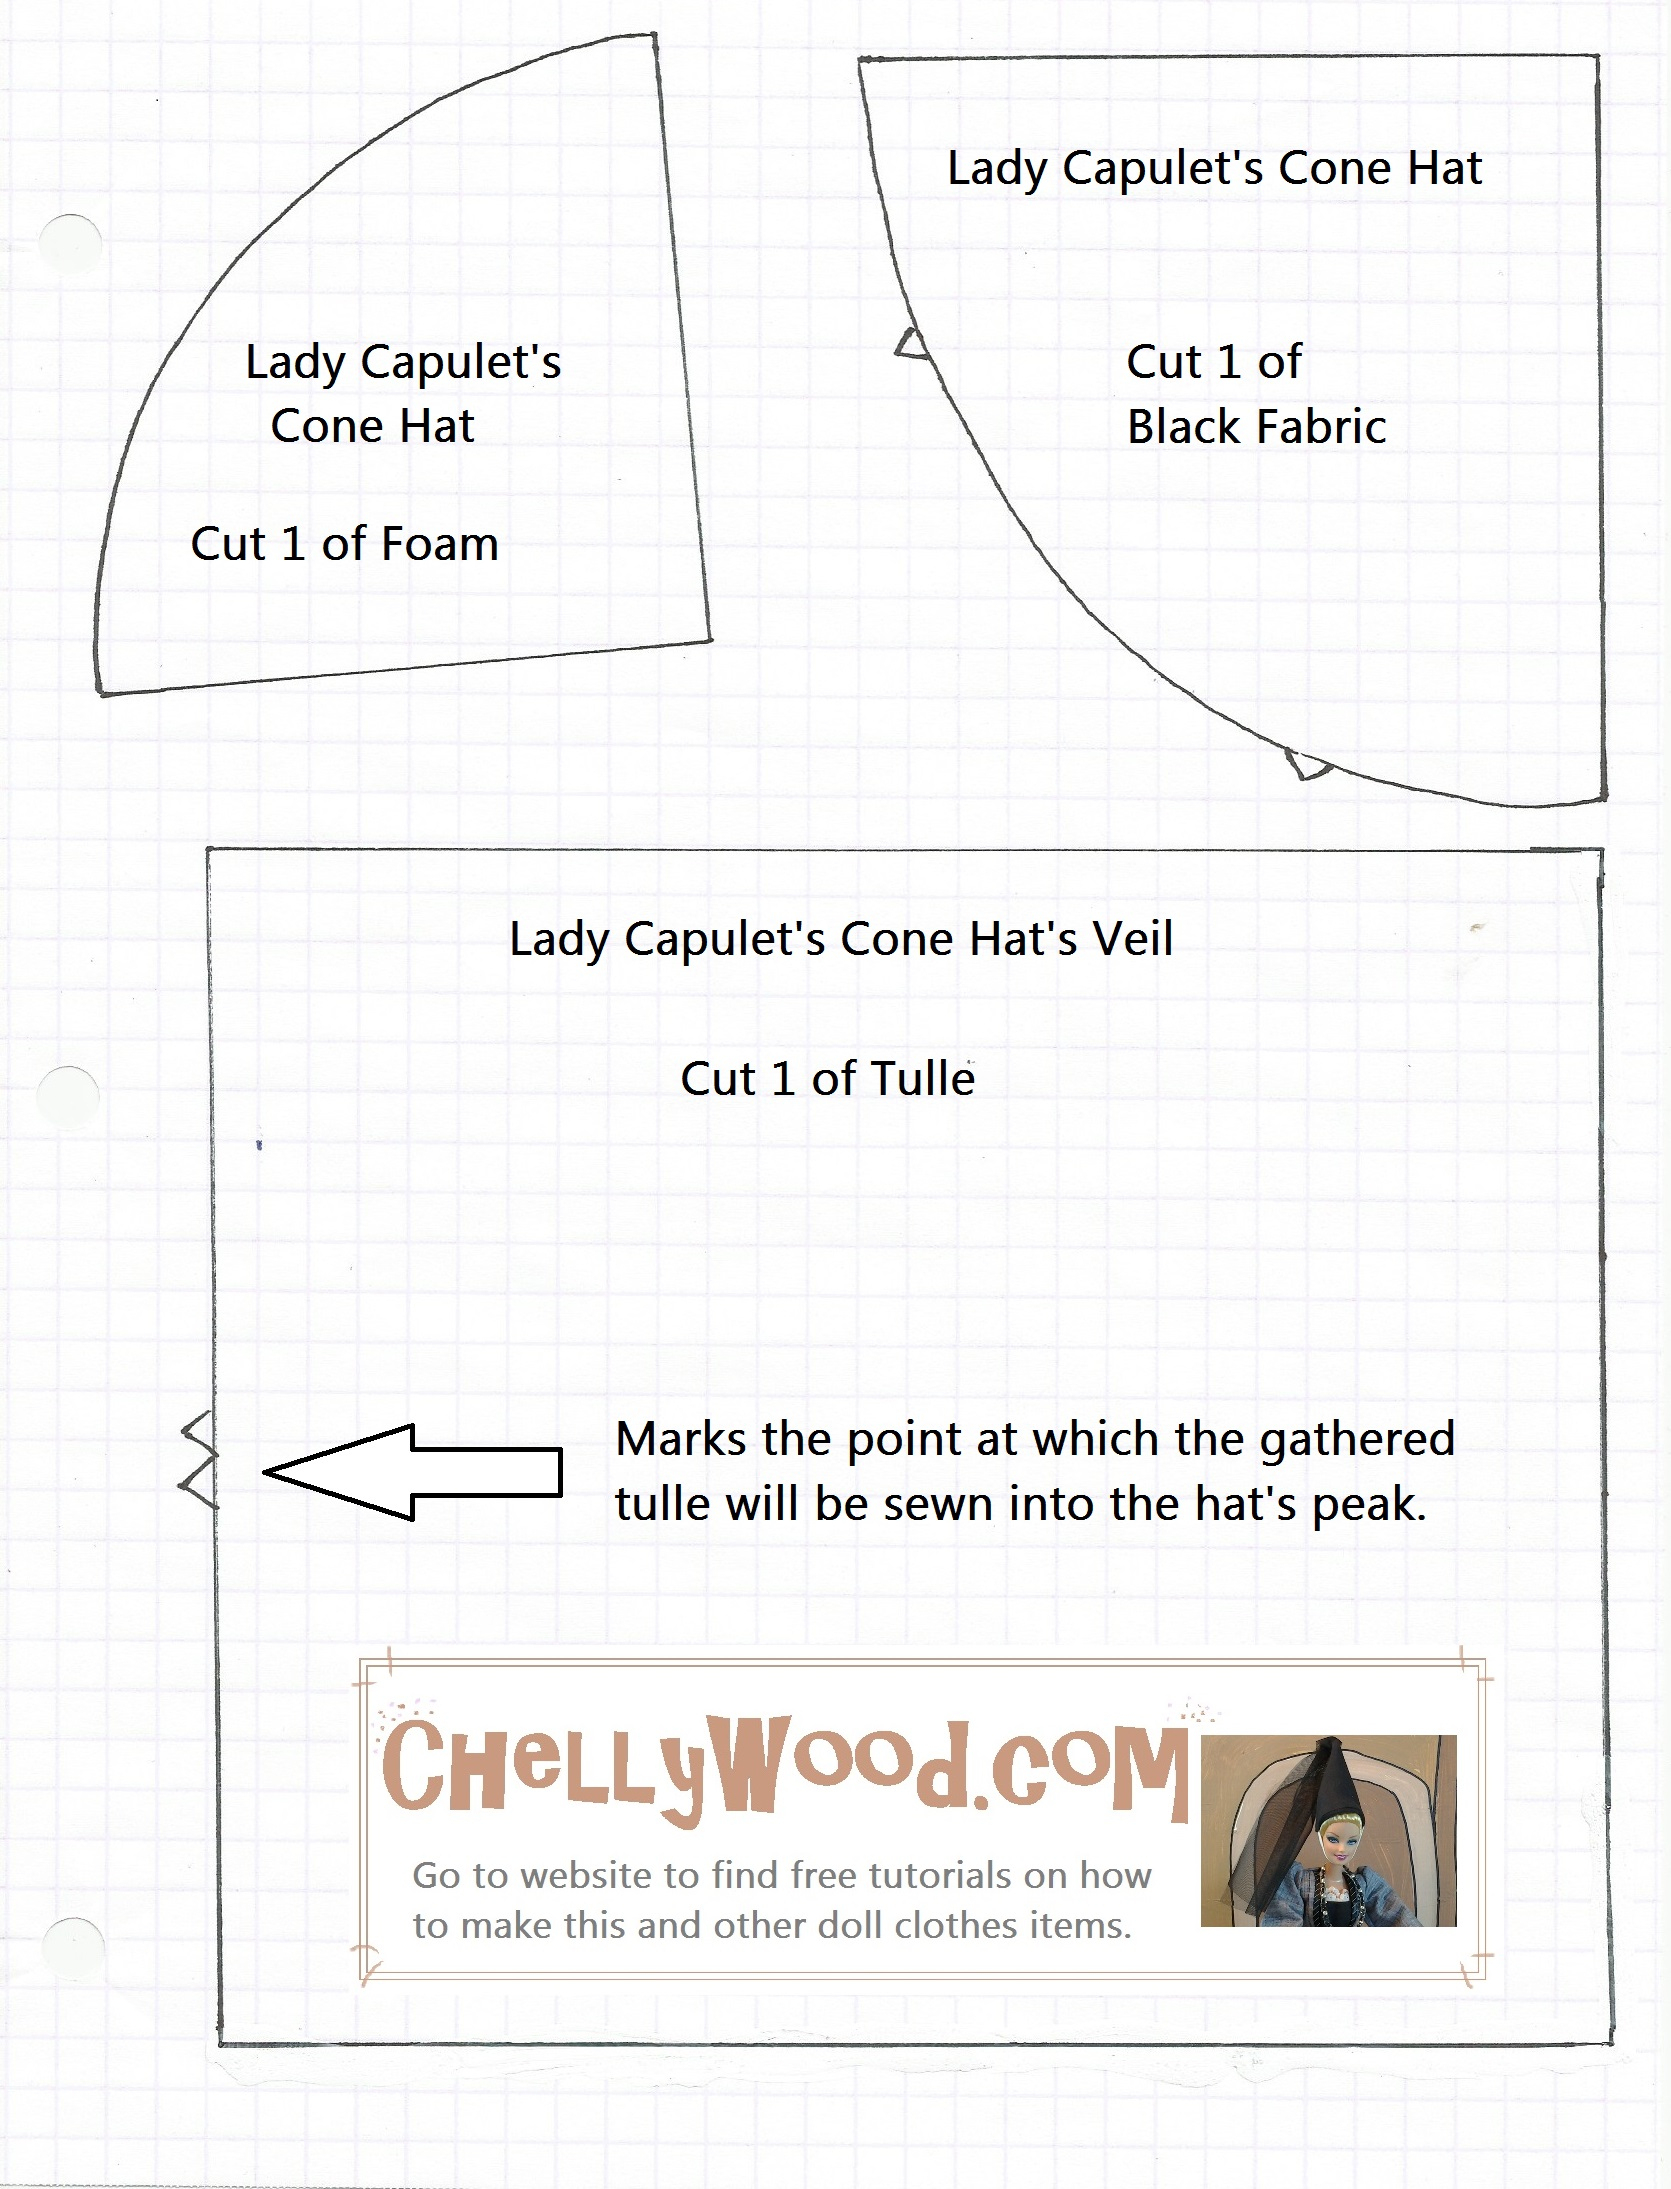 Free Printable Barbie Doll Clothes Patterns – Chellywood - Easy Barbie Clothes Patterns Free Printable